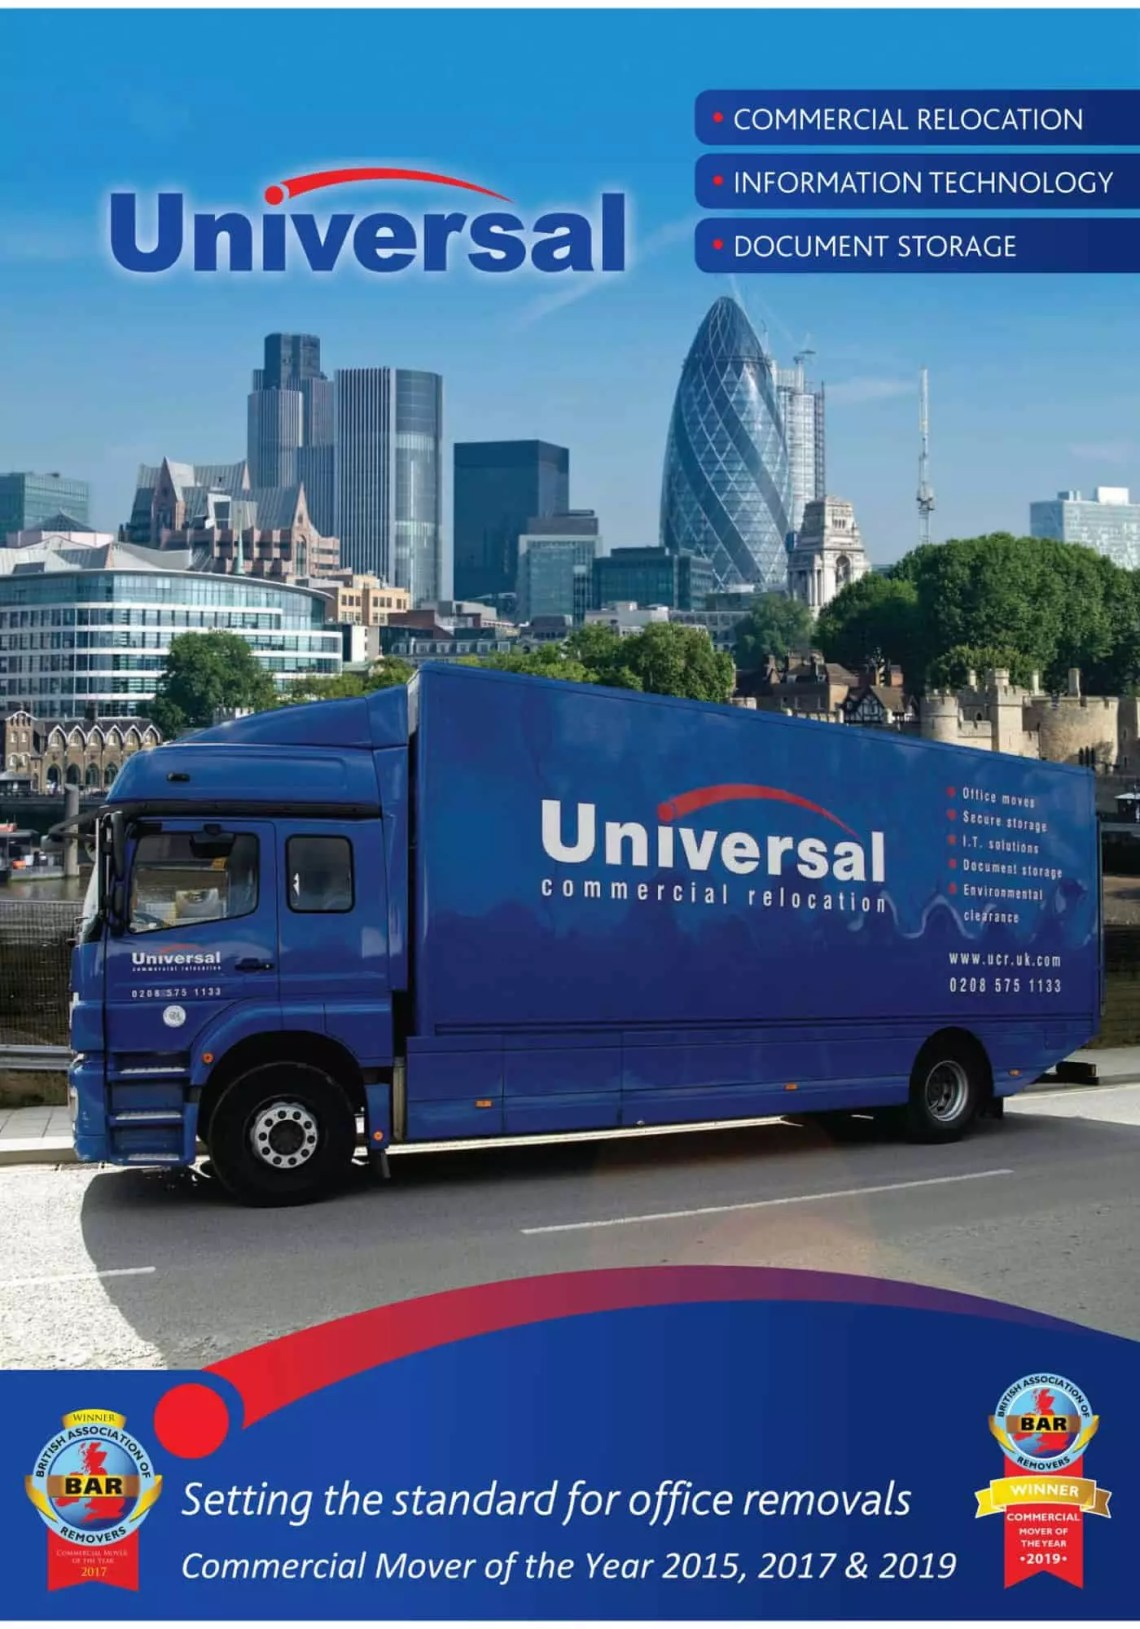 Current Universal Commercial Relocation brochure